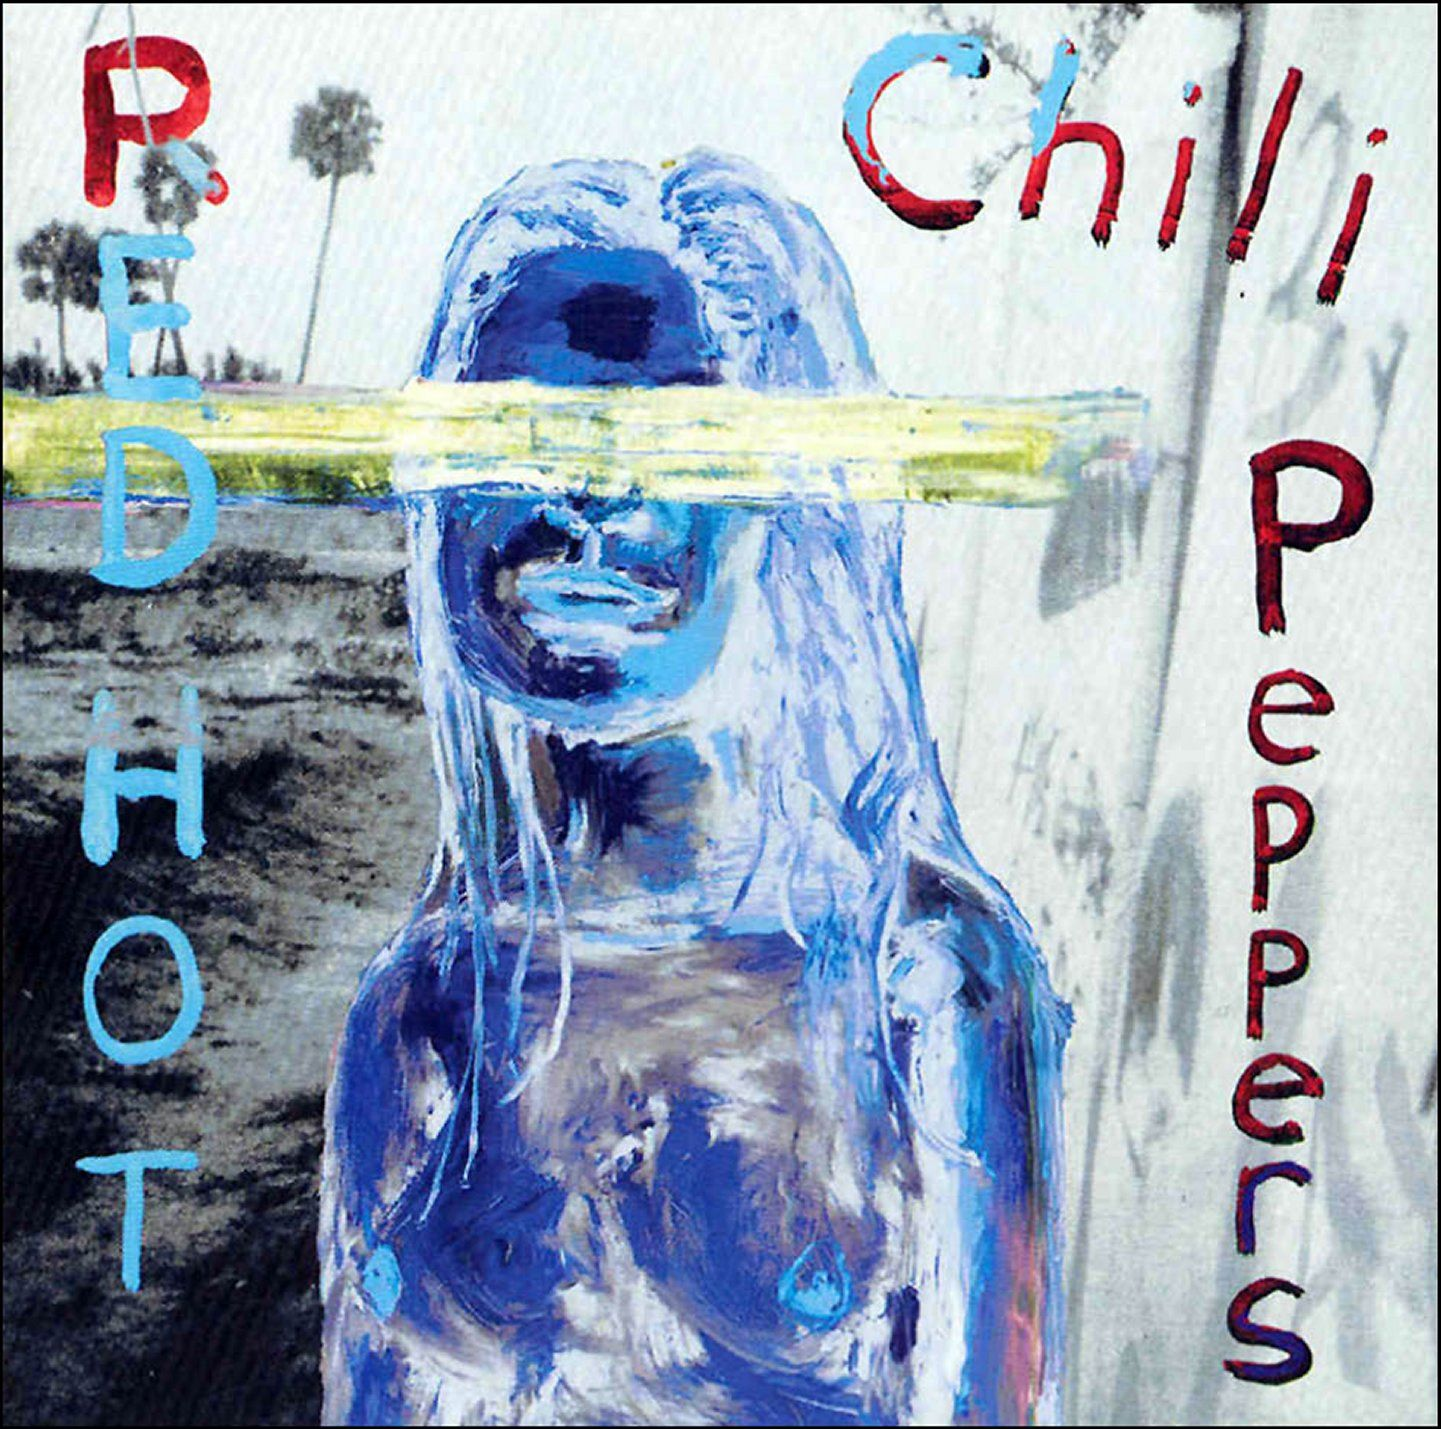 Red Hot Chili Peppers - By The Way album cover